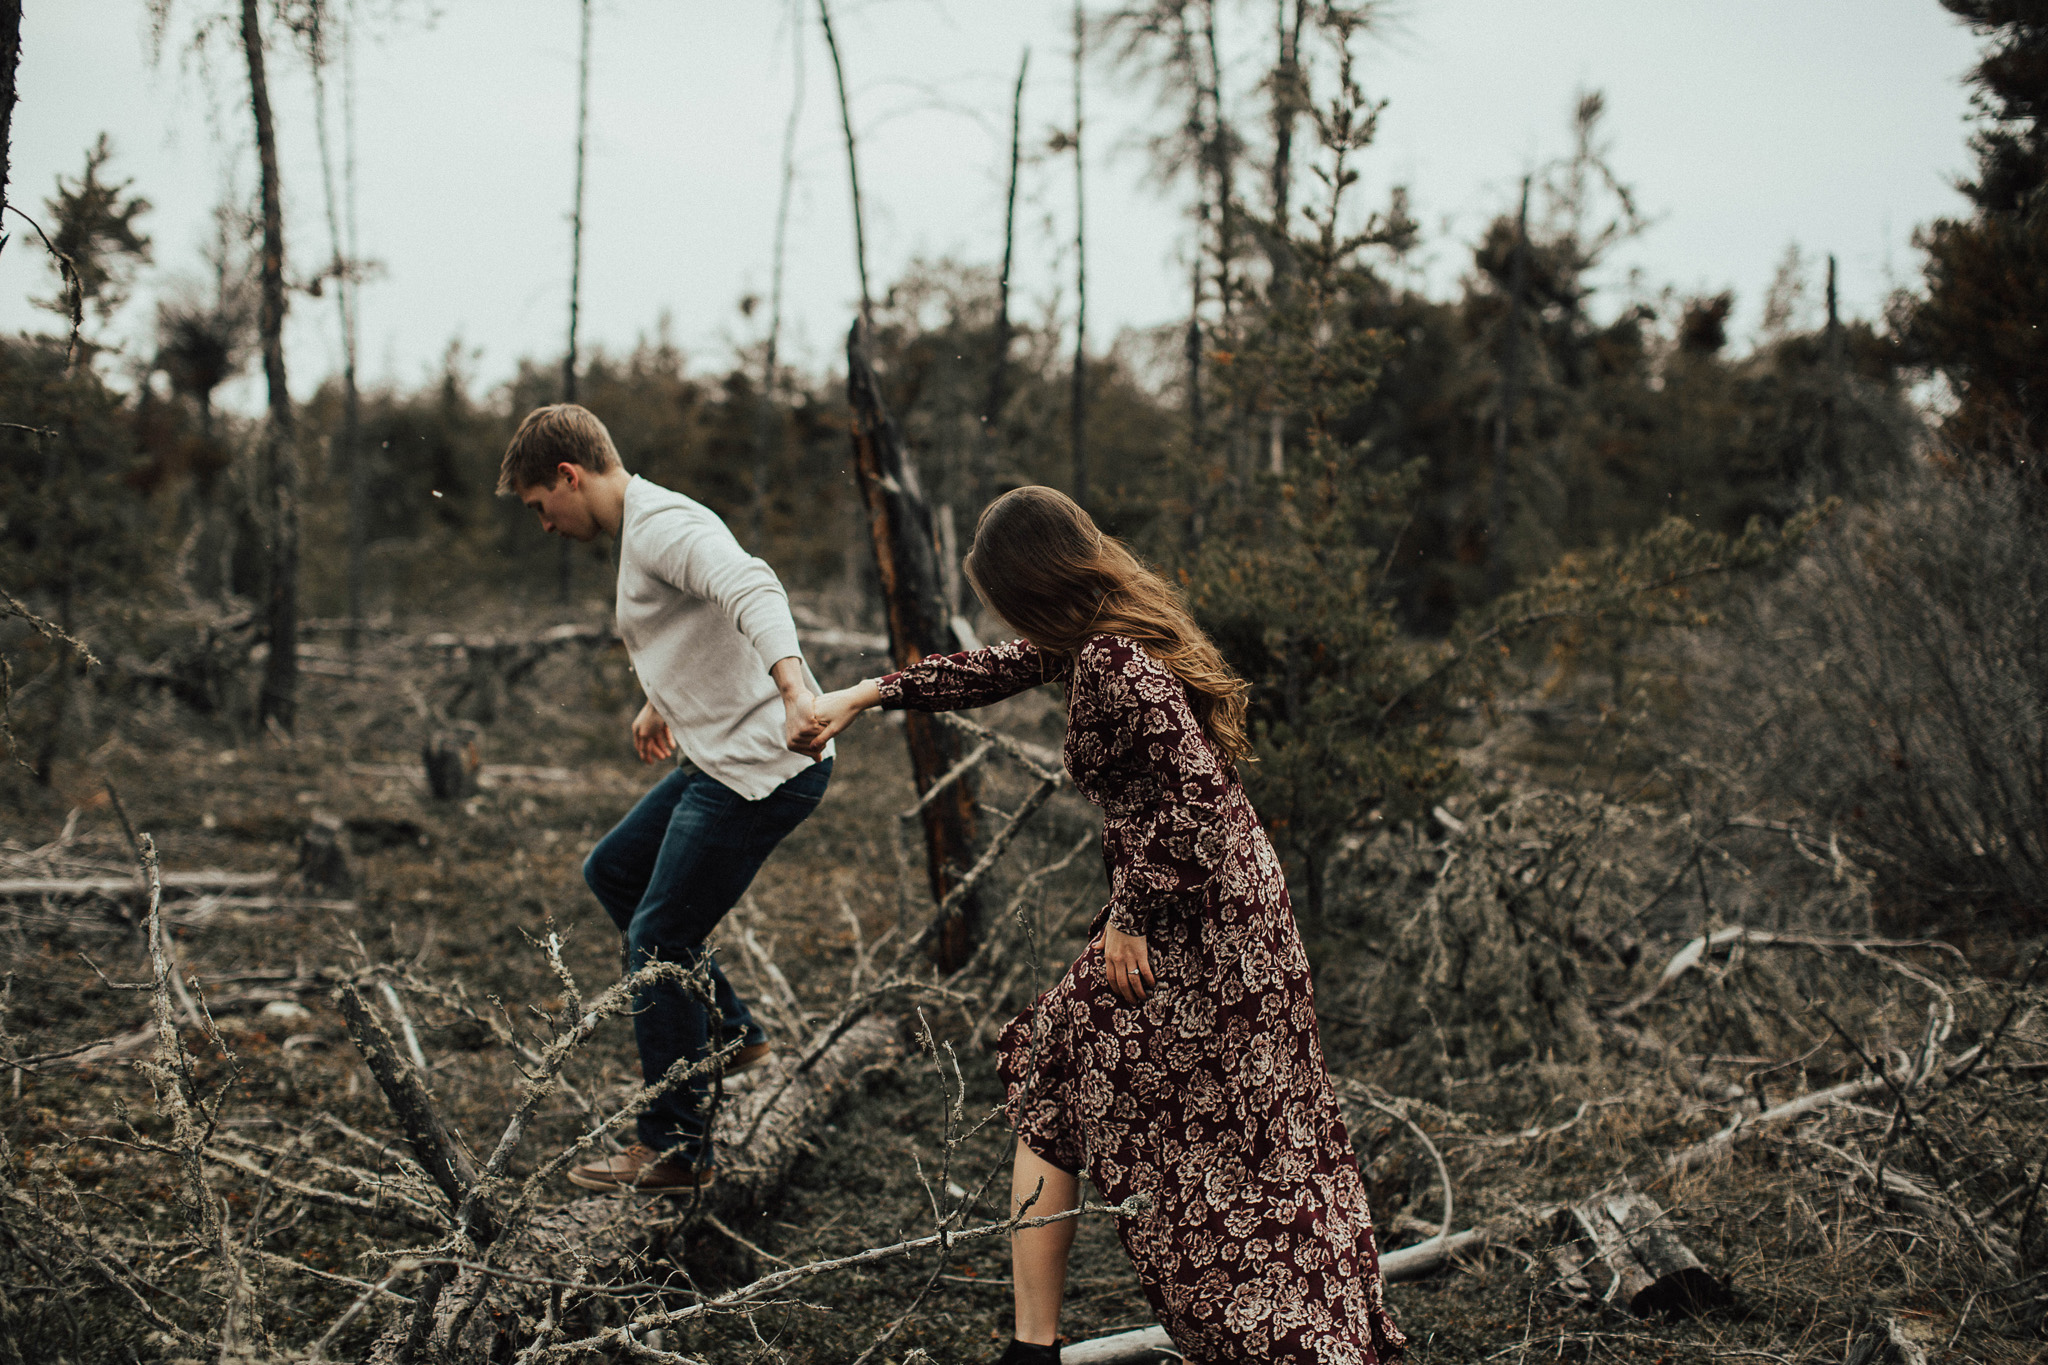 Edmonton Engagement Photographer - Michelle Larmand Photography - Mossy woods engagement session047